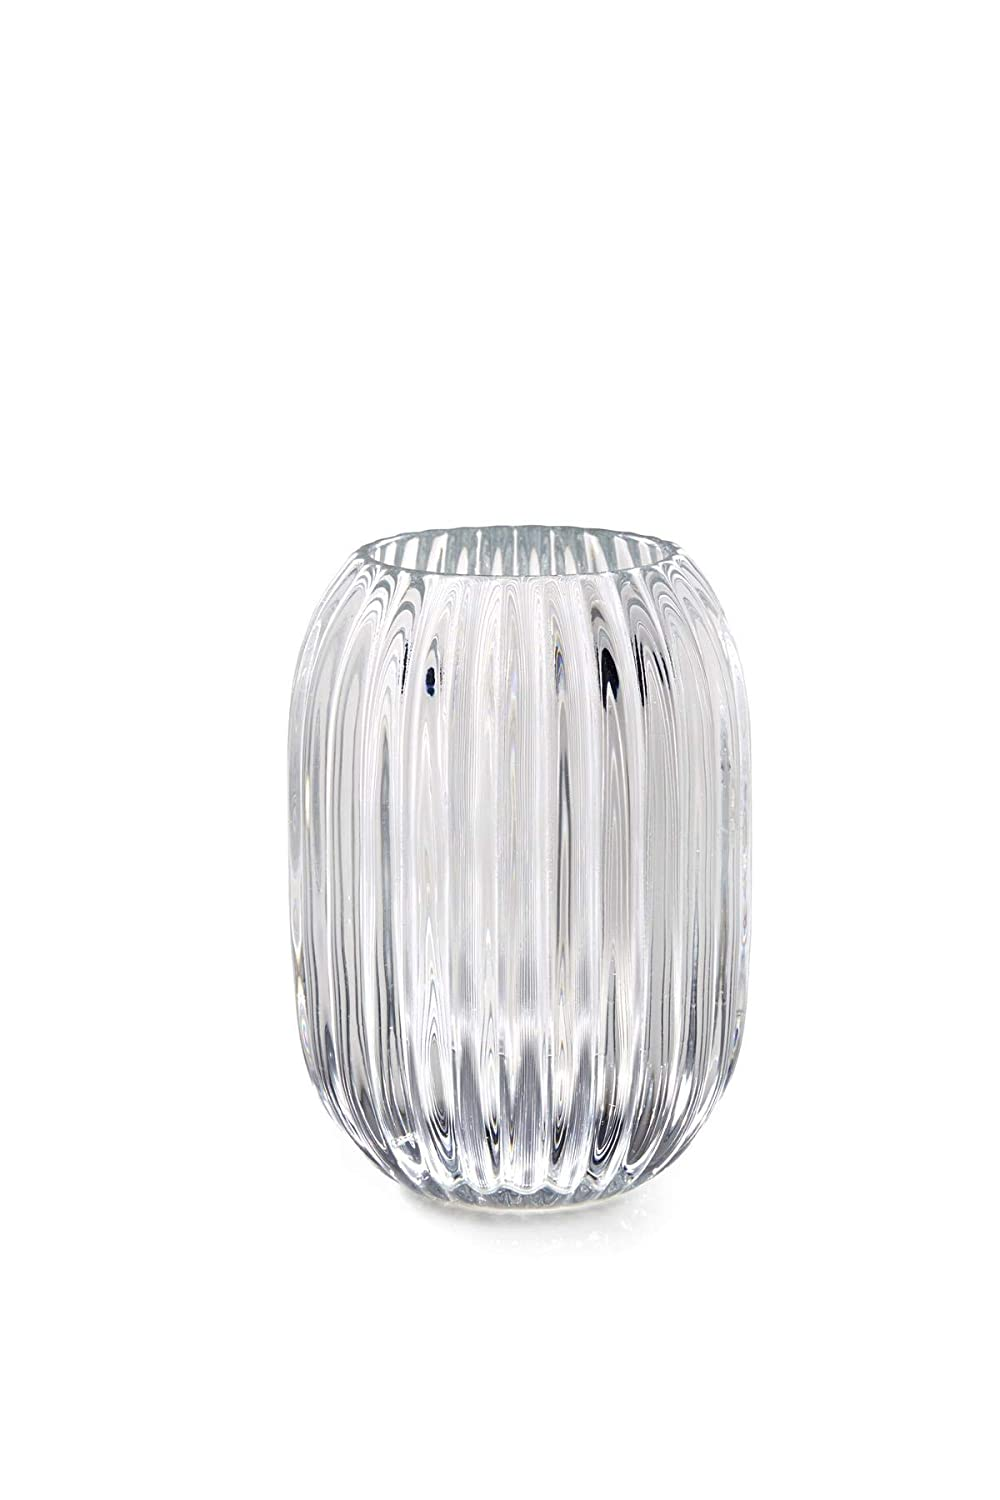 "Serene Spaces Living Clear Optical Glass Votive Holder, Perfect for Weddings and Home Décor, Measures 5"" Tall and 3.5"" Diameter"